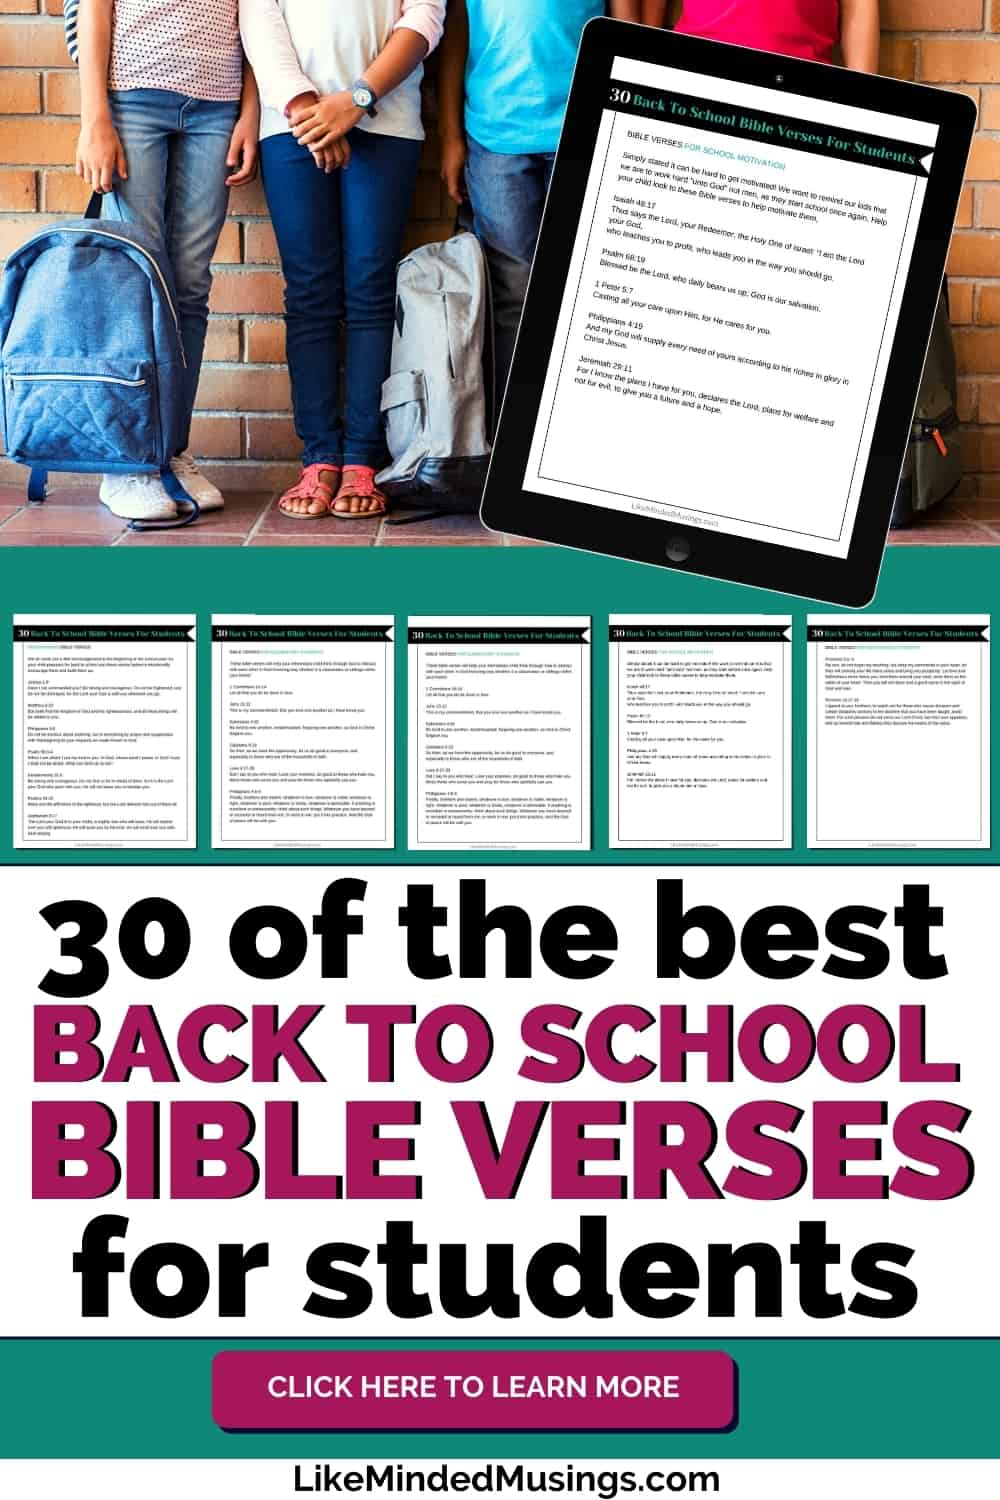 Pictures of the 30 of the Best Back to School Bible Verses For Students